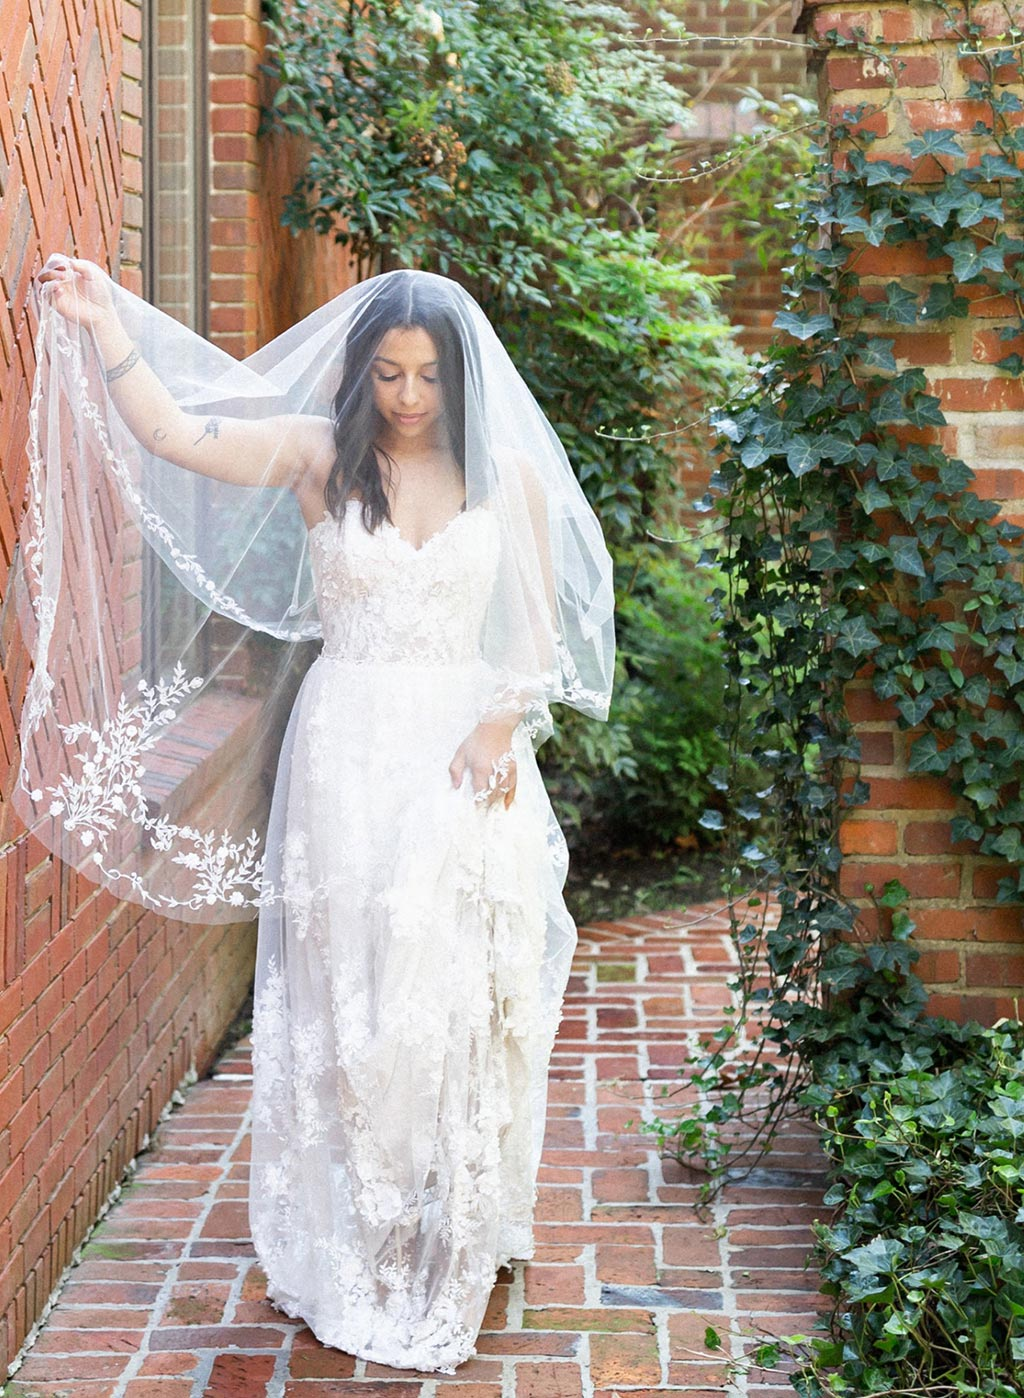 Bride in Lace Wedding Dress and Bridal Veil